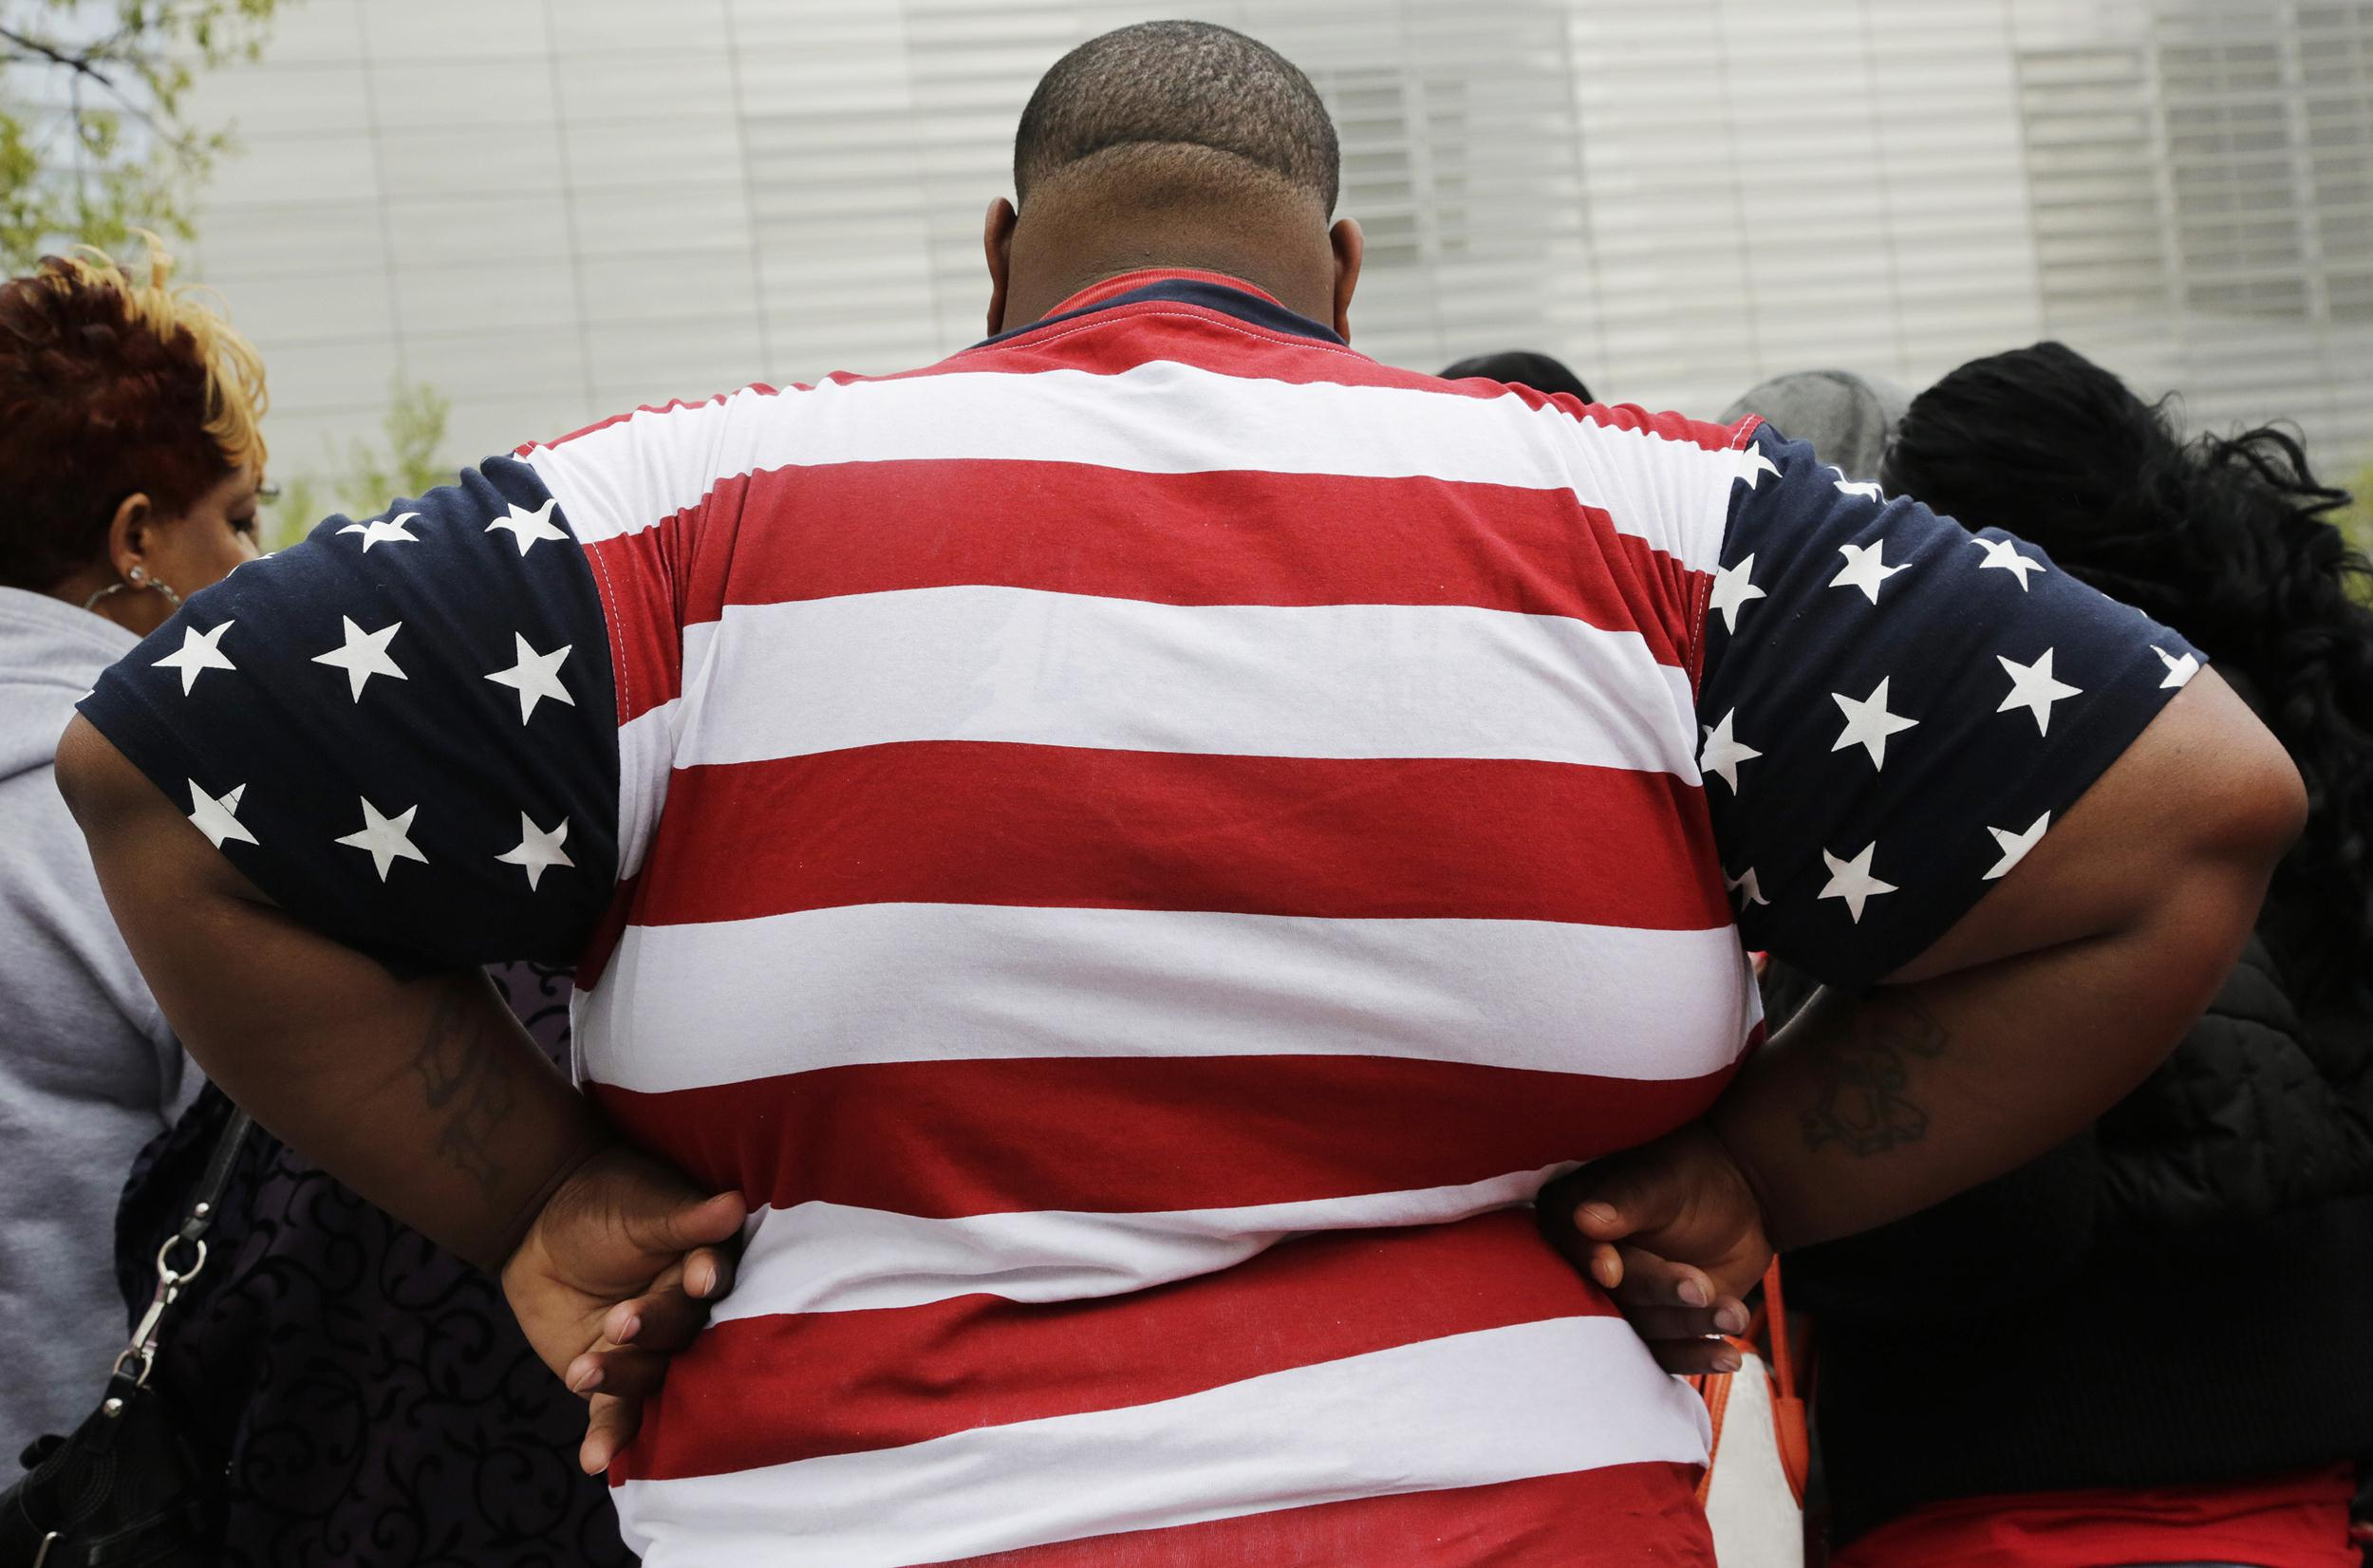 Image: An overweight man wears a shirt patterned after the American flag